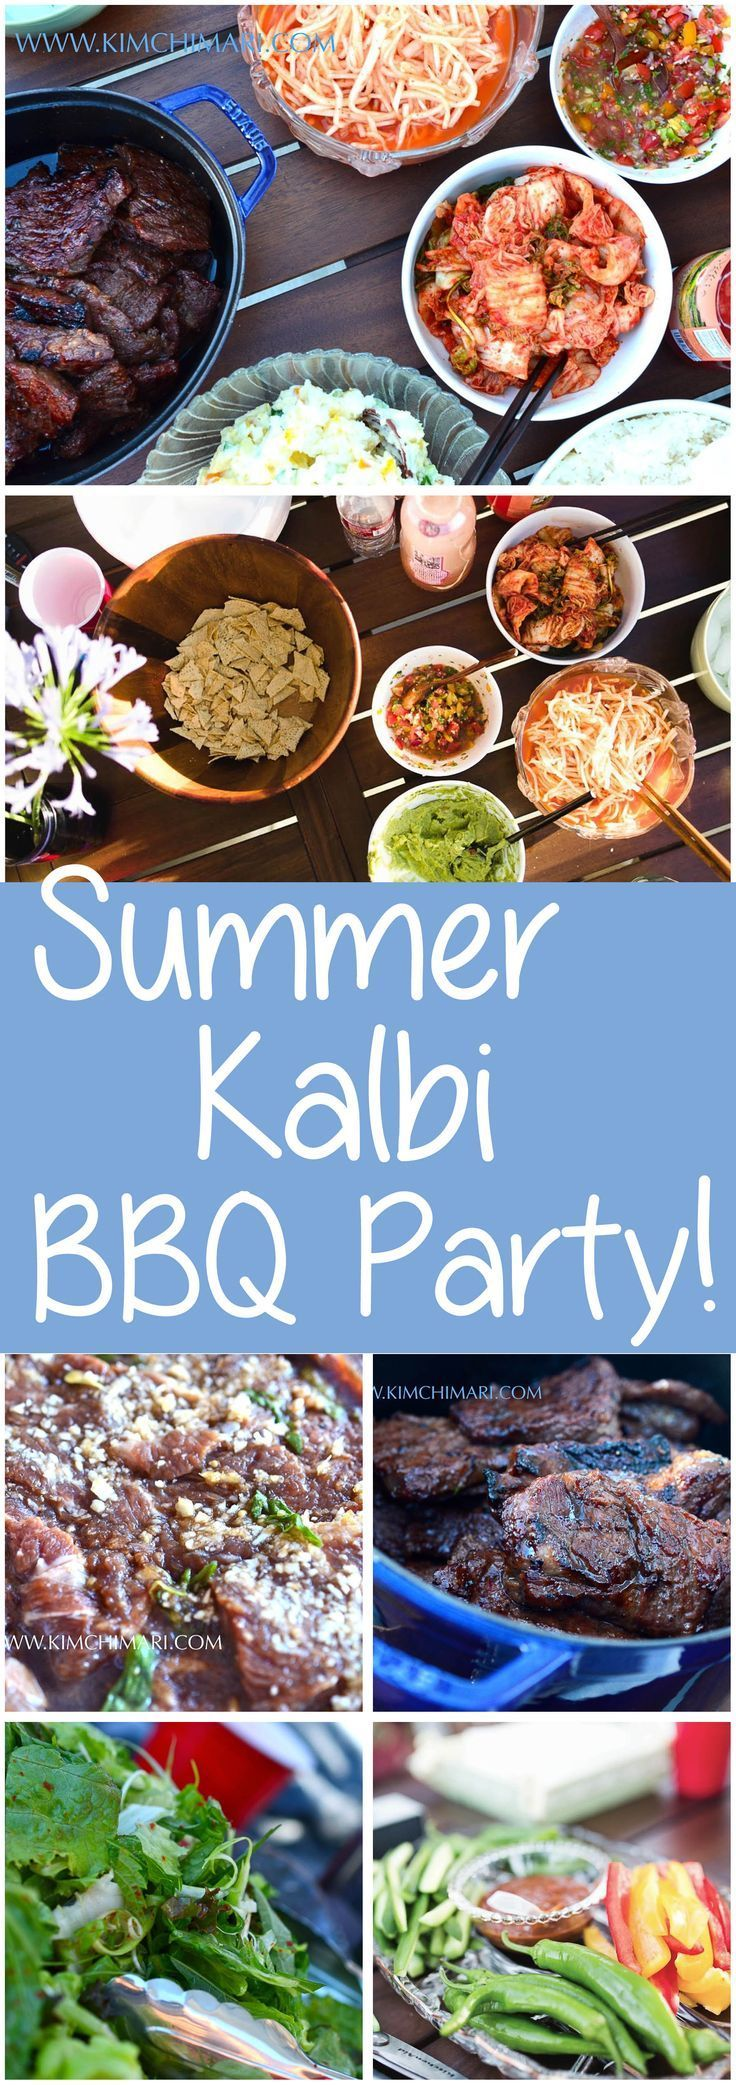 Have your own BEST Korean Summer BBQ Party! Follow tips and recipes for a wonderful feast of Kalbi and side dishes. Happy Summer!!  |  Kimchimari.com